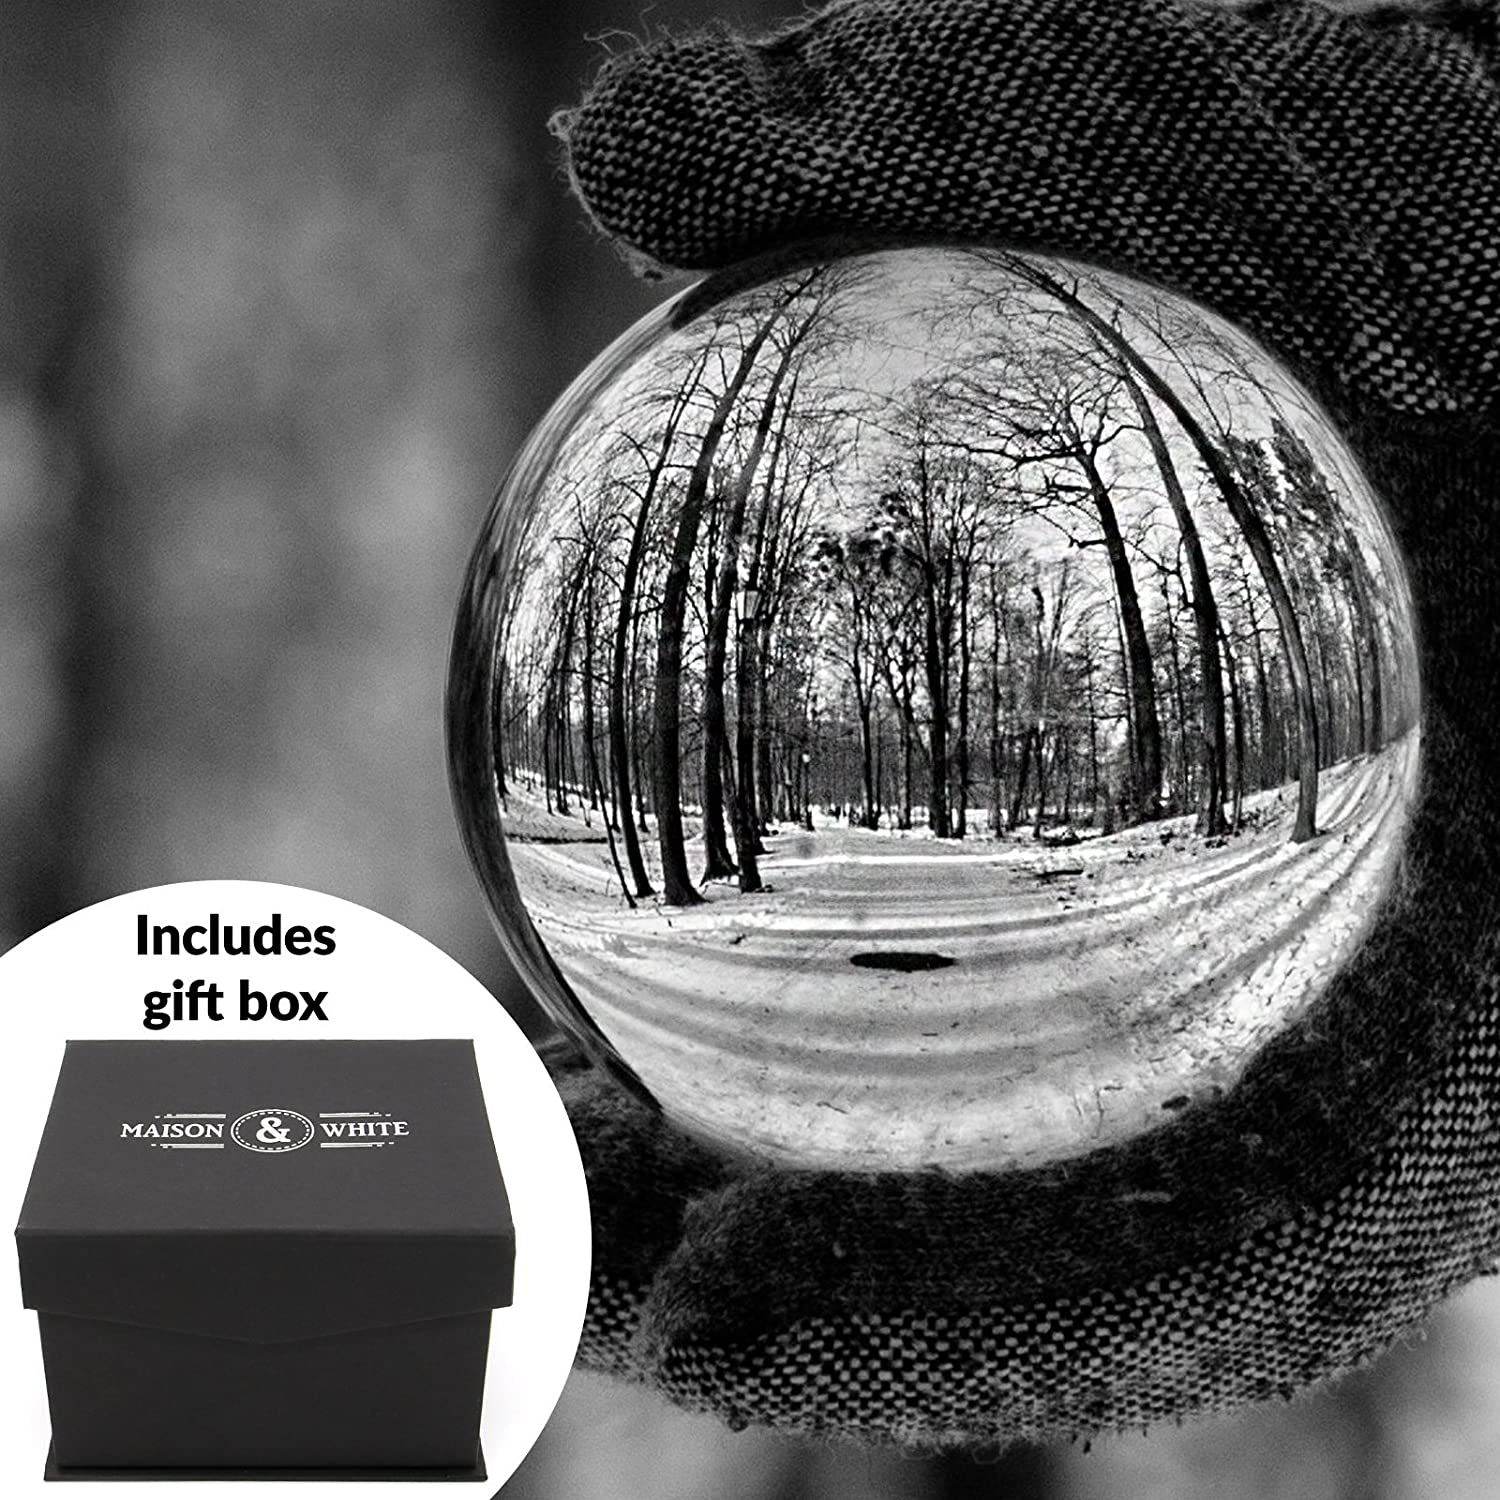 Clear Crystal Ball | 80mm K9 Glass Lens Photo Sphere | Includes Free Gift Box & Stand | For Photography, Decoration, Meditation | Ideal Gift Idea | M&W Xbite